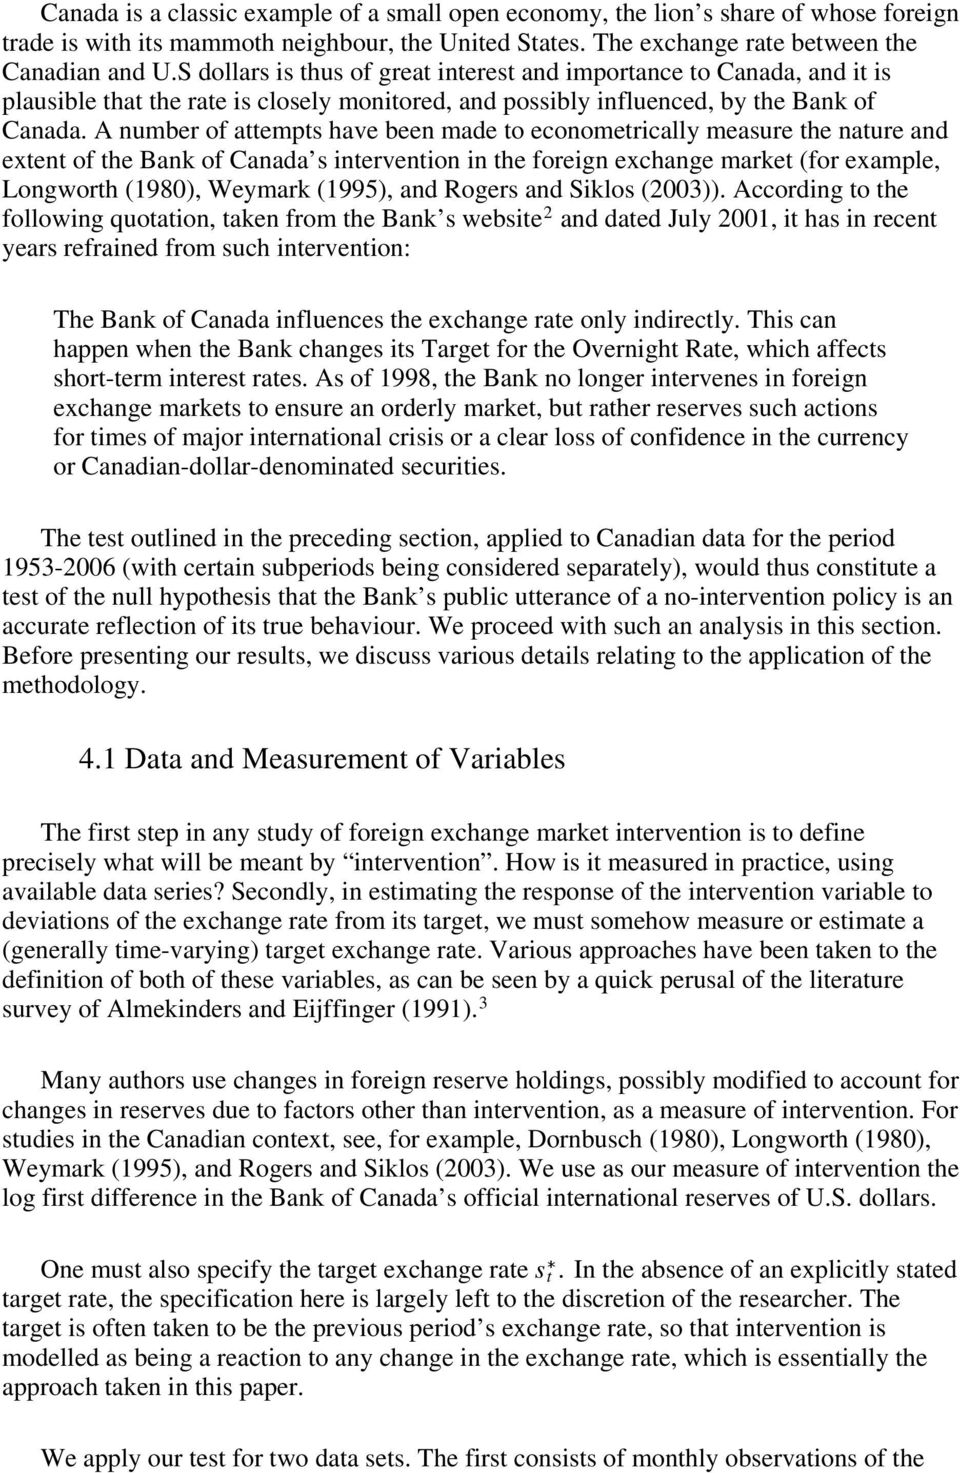 A number of attempts have been made to econometrically measure the nature and extent of the Bank of Canada s intervention in the foreign exchange market (for example, Longworth (1980), Weymark